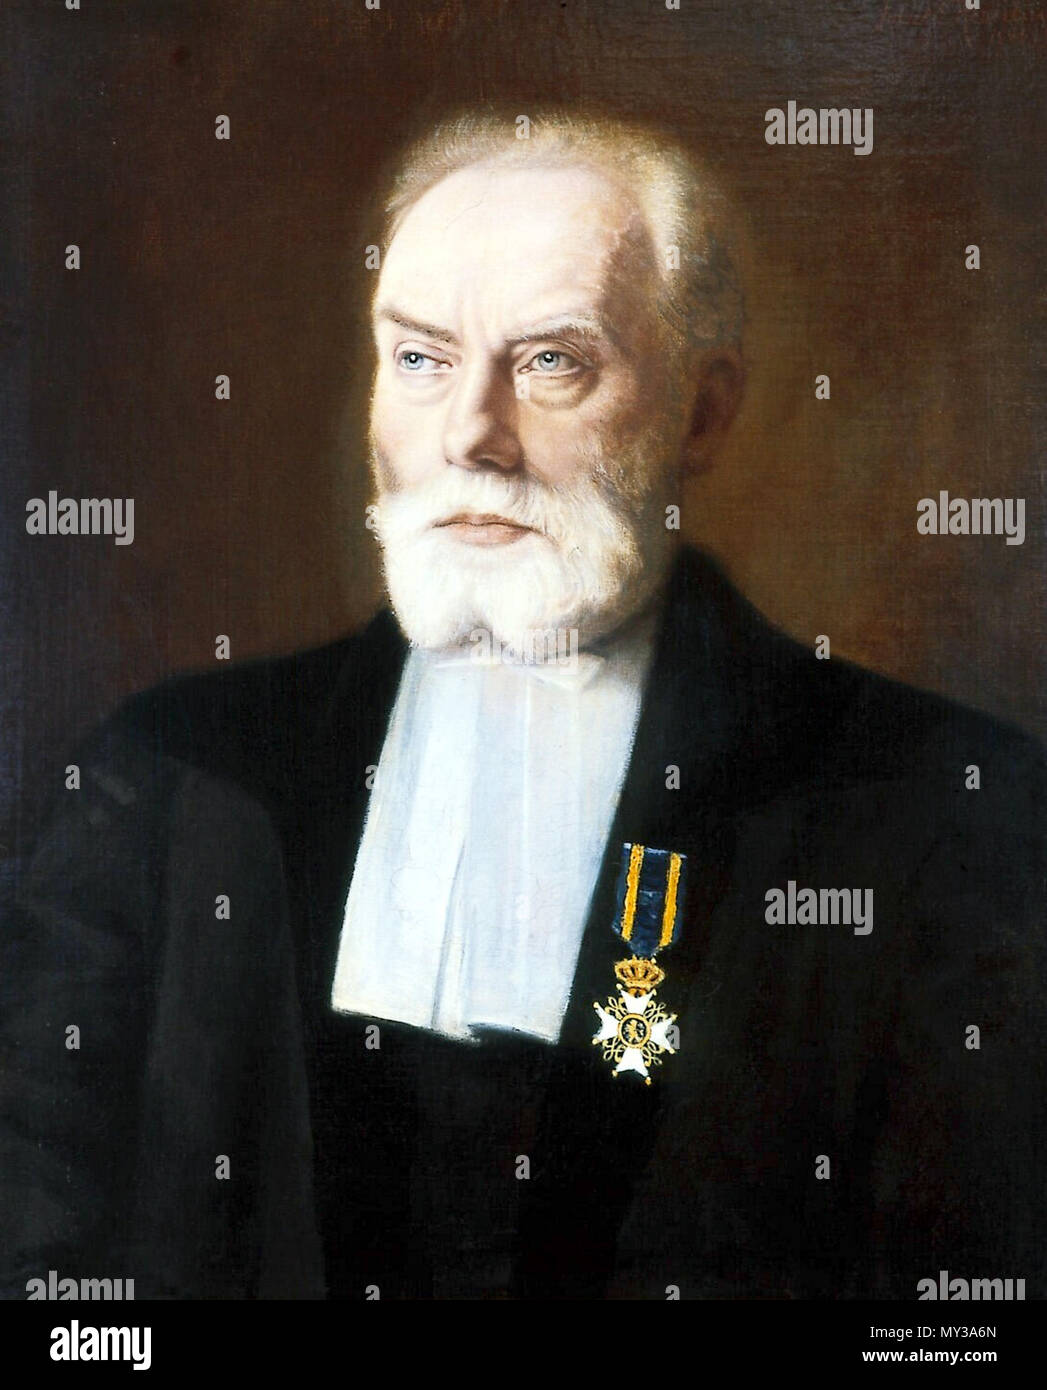 . English: Hendrik Wefers Bettink (1839-1921) niederländischer Viol ensemble. 1901. Jules Henri Eugène Roberti 559 Wefers-Bettink Hendrik Stockfoto